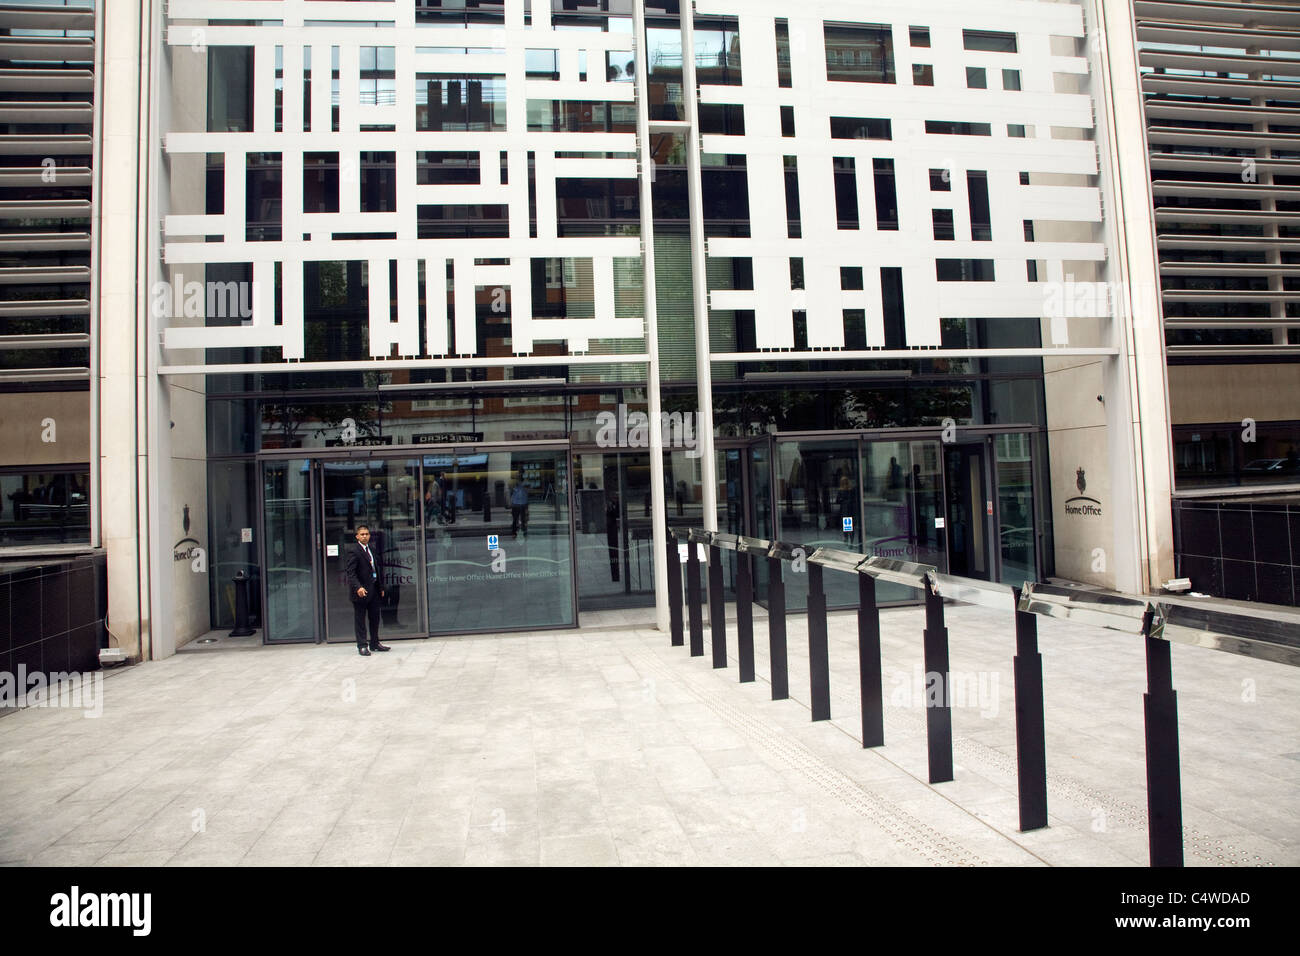 The Home Office government building, Marsham Street, Westminster, London - Stock Image